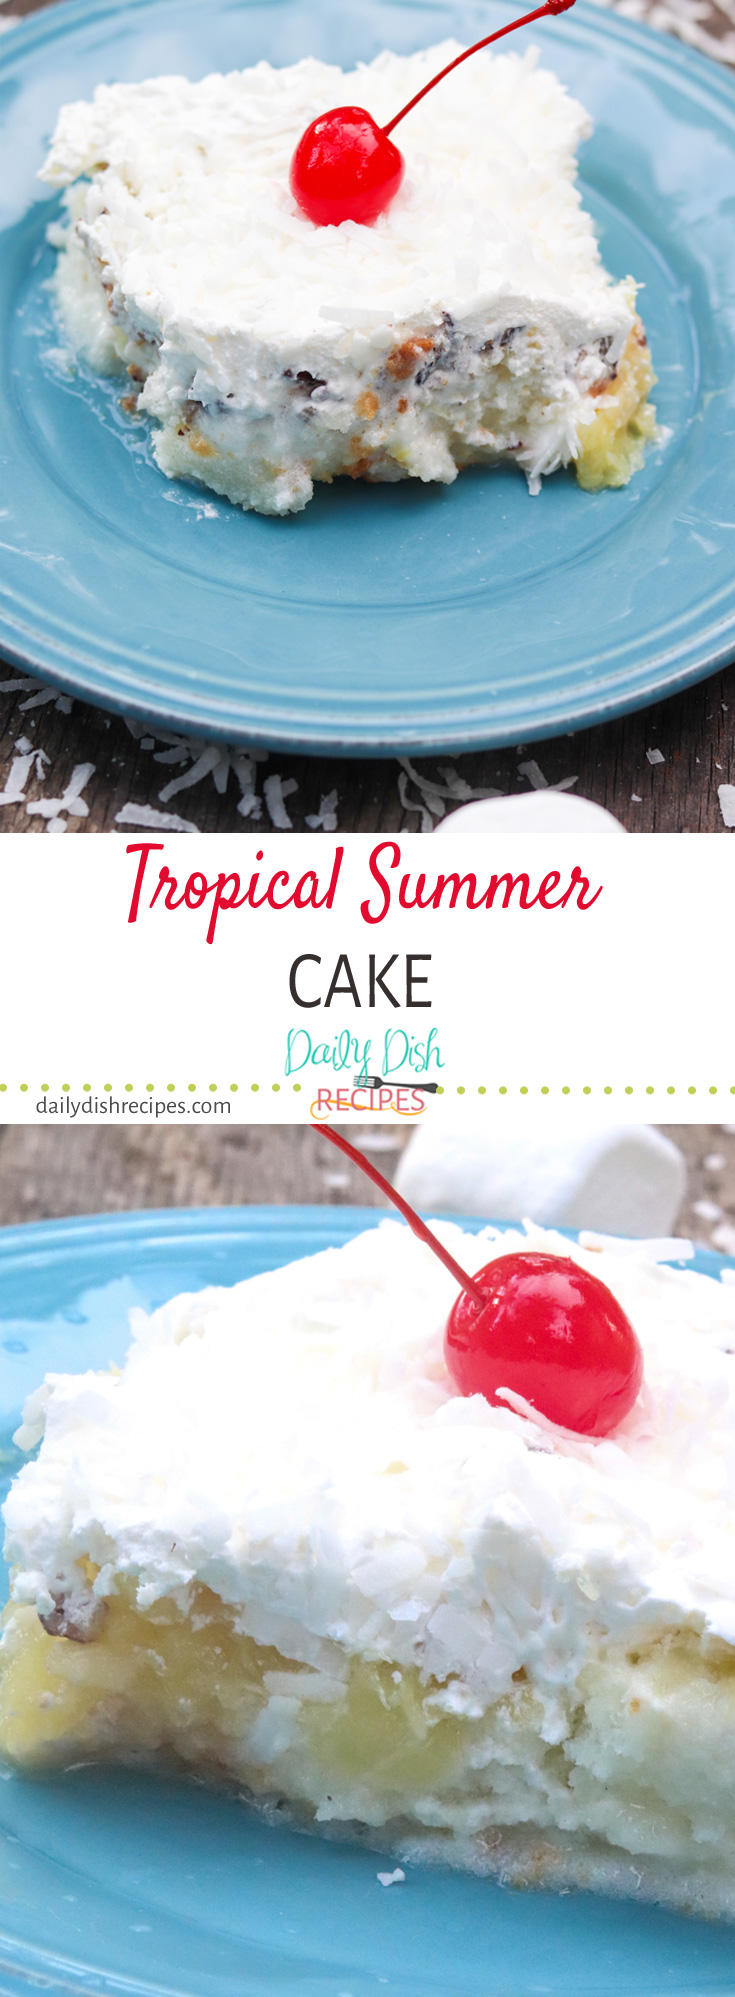 Old fashioned (vintage) cake that just screams summer. This Tropical Summer Cake is layered with angel food cake, marshmallow, pineapple, nuts and topped with whipped topping and coconut. You really cannot find a more summer cake if you tried. This is from my childhood, do you remember this cake too?